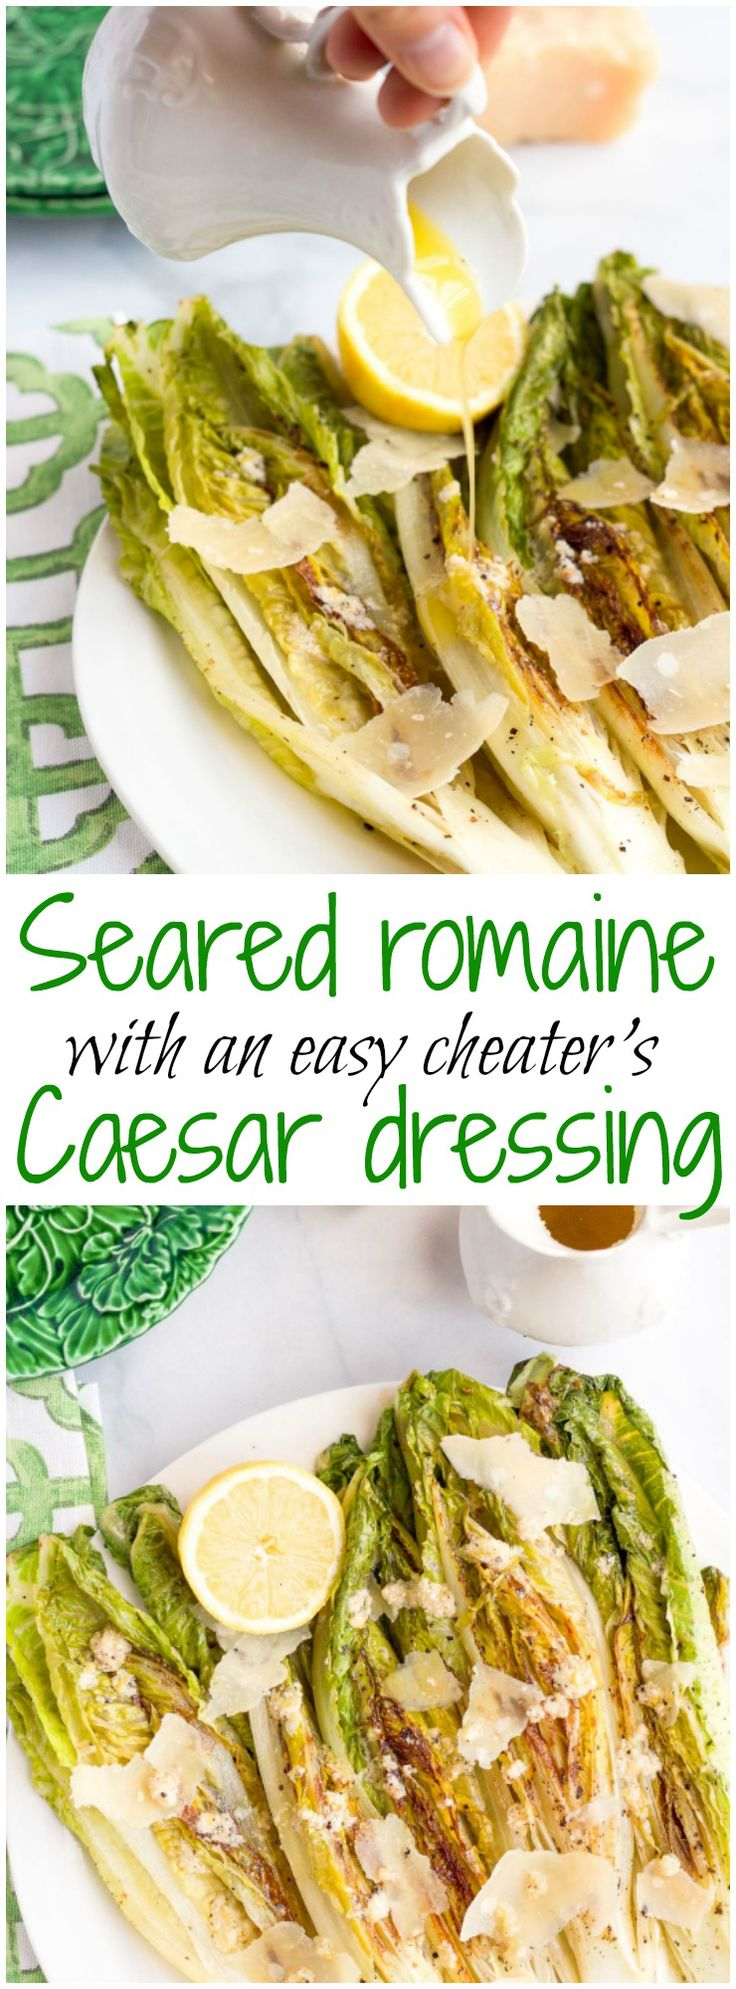 Diet caesar salad dressing recipes